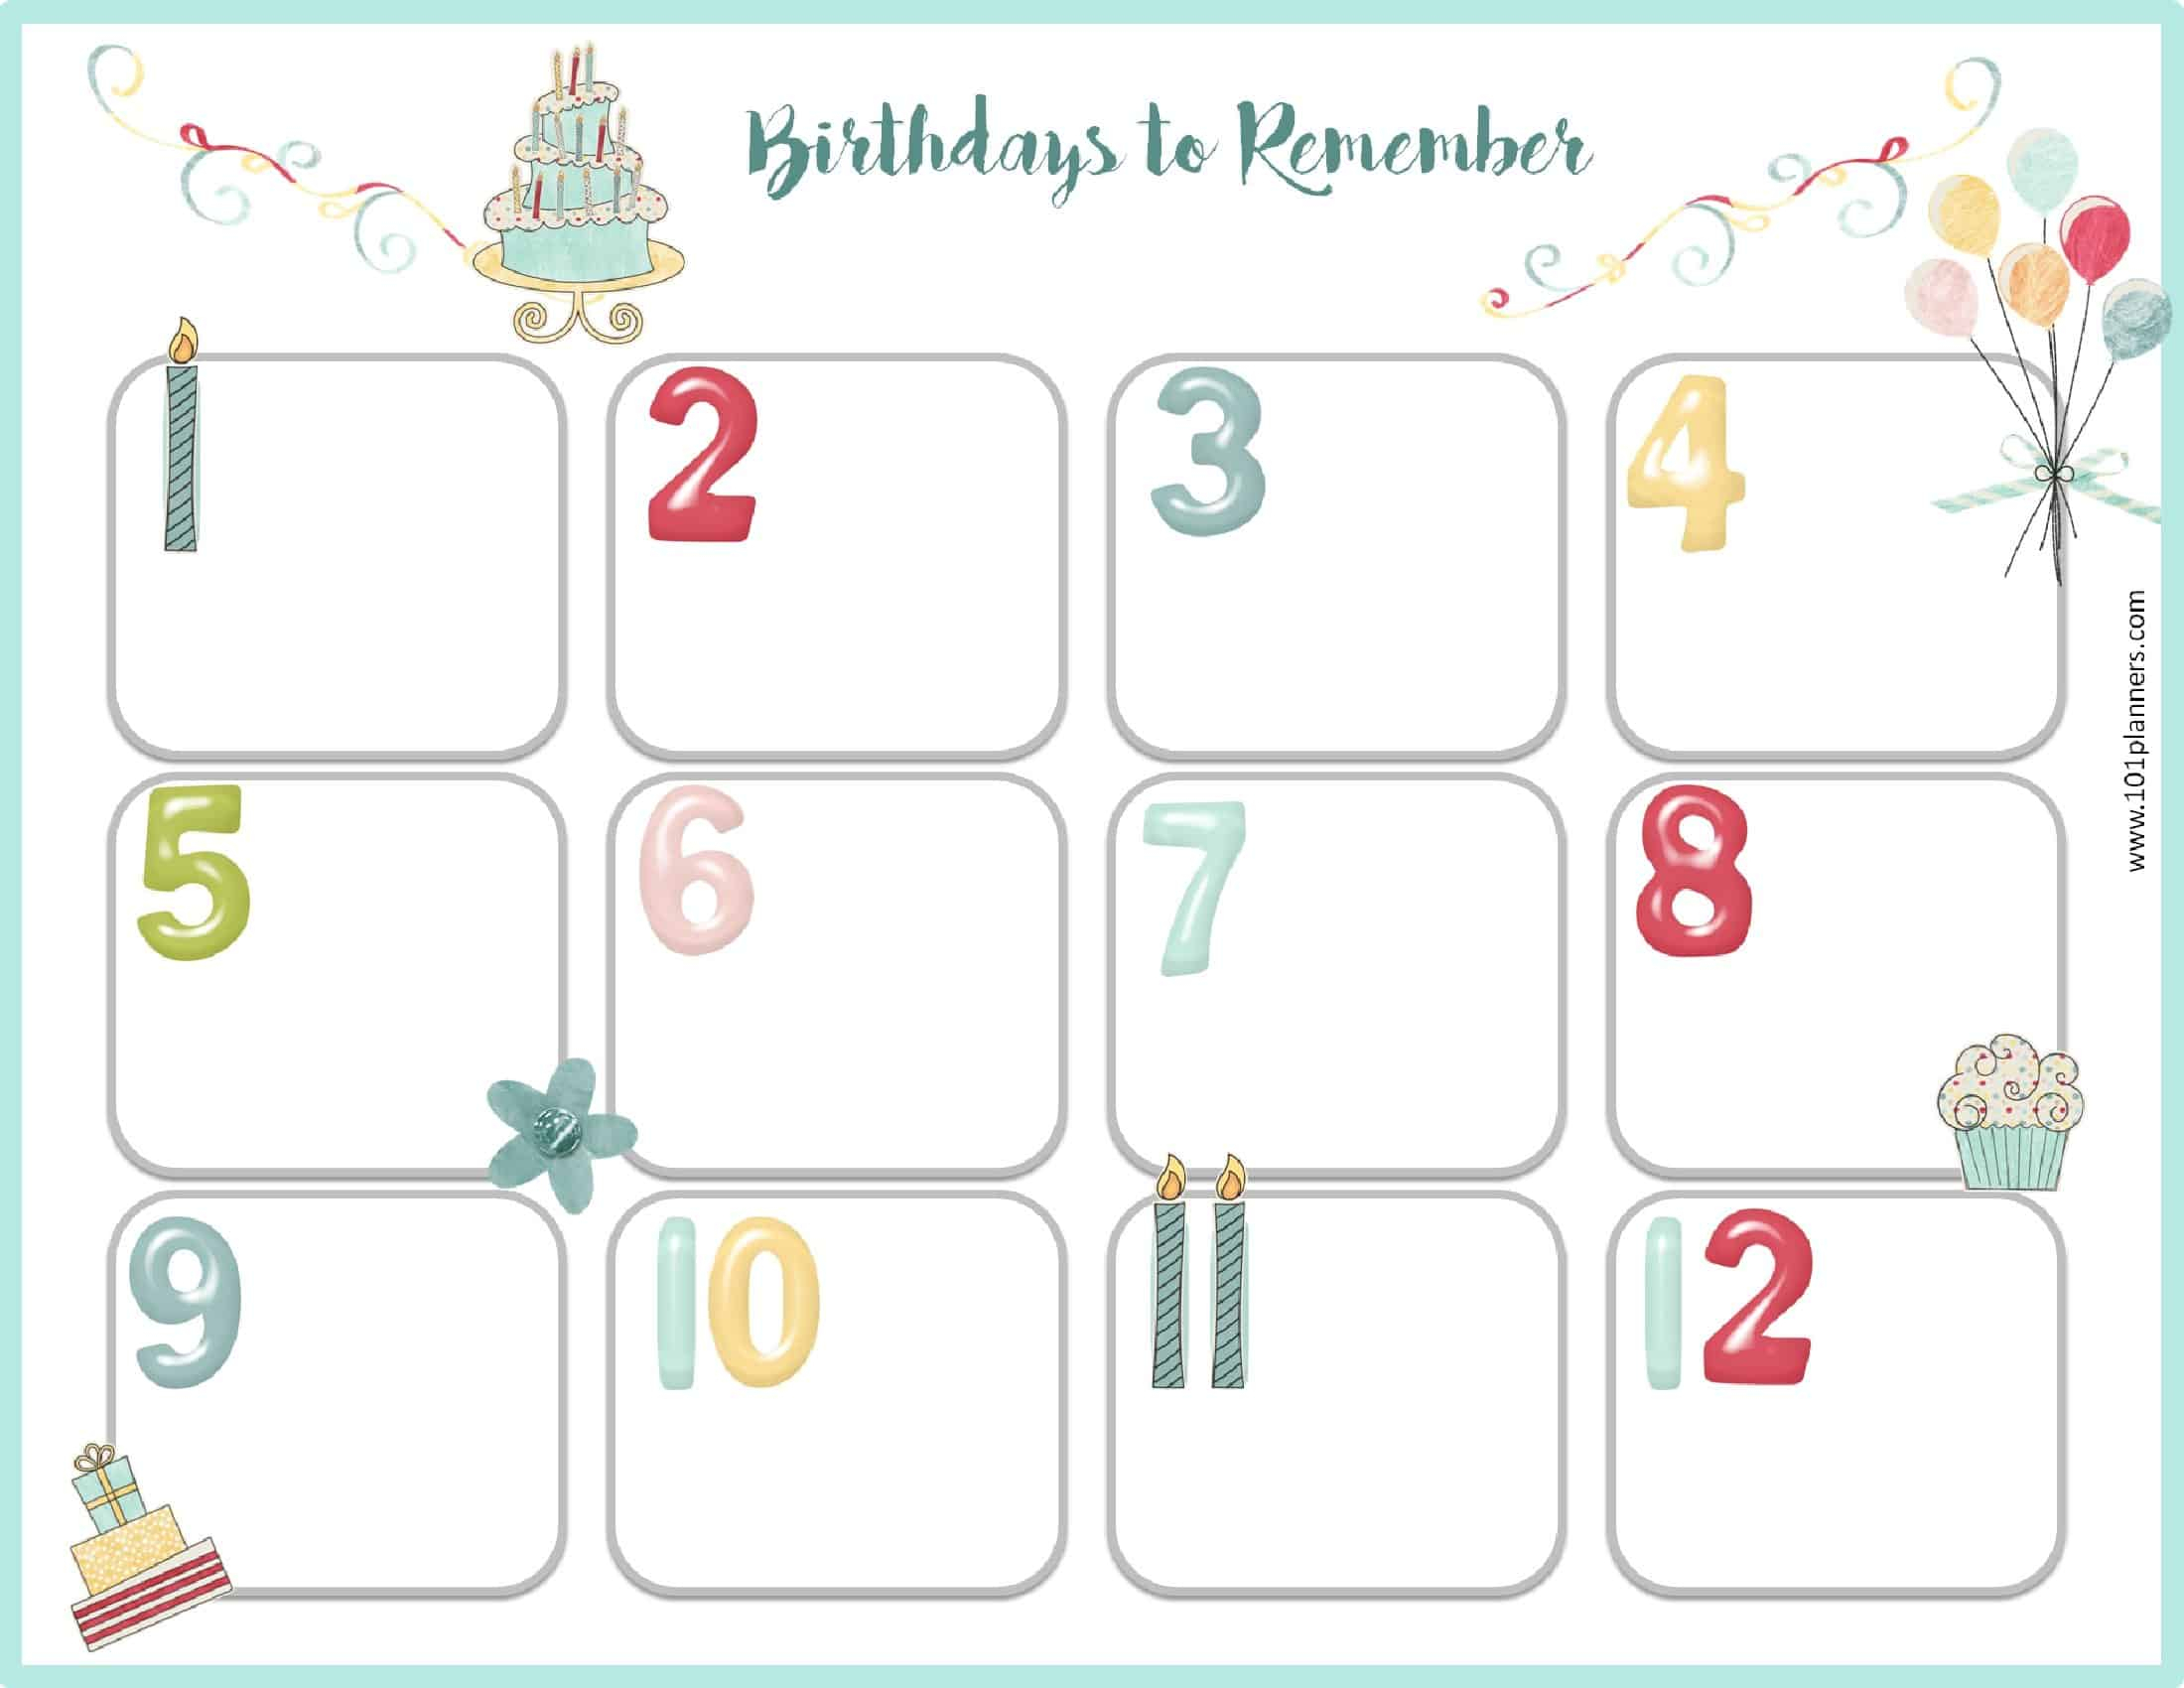 Free Birthday Calendar | Printable & Customizable | Many Designs! intended for Free Printable Birthday Calendar Template